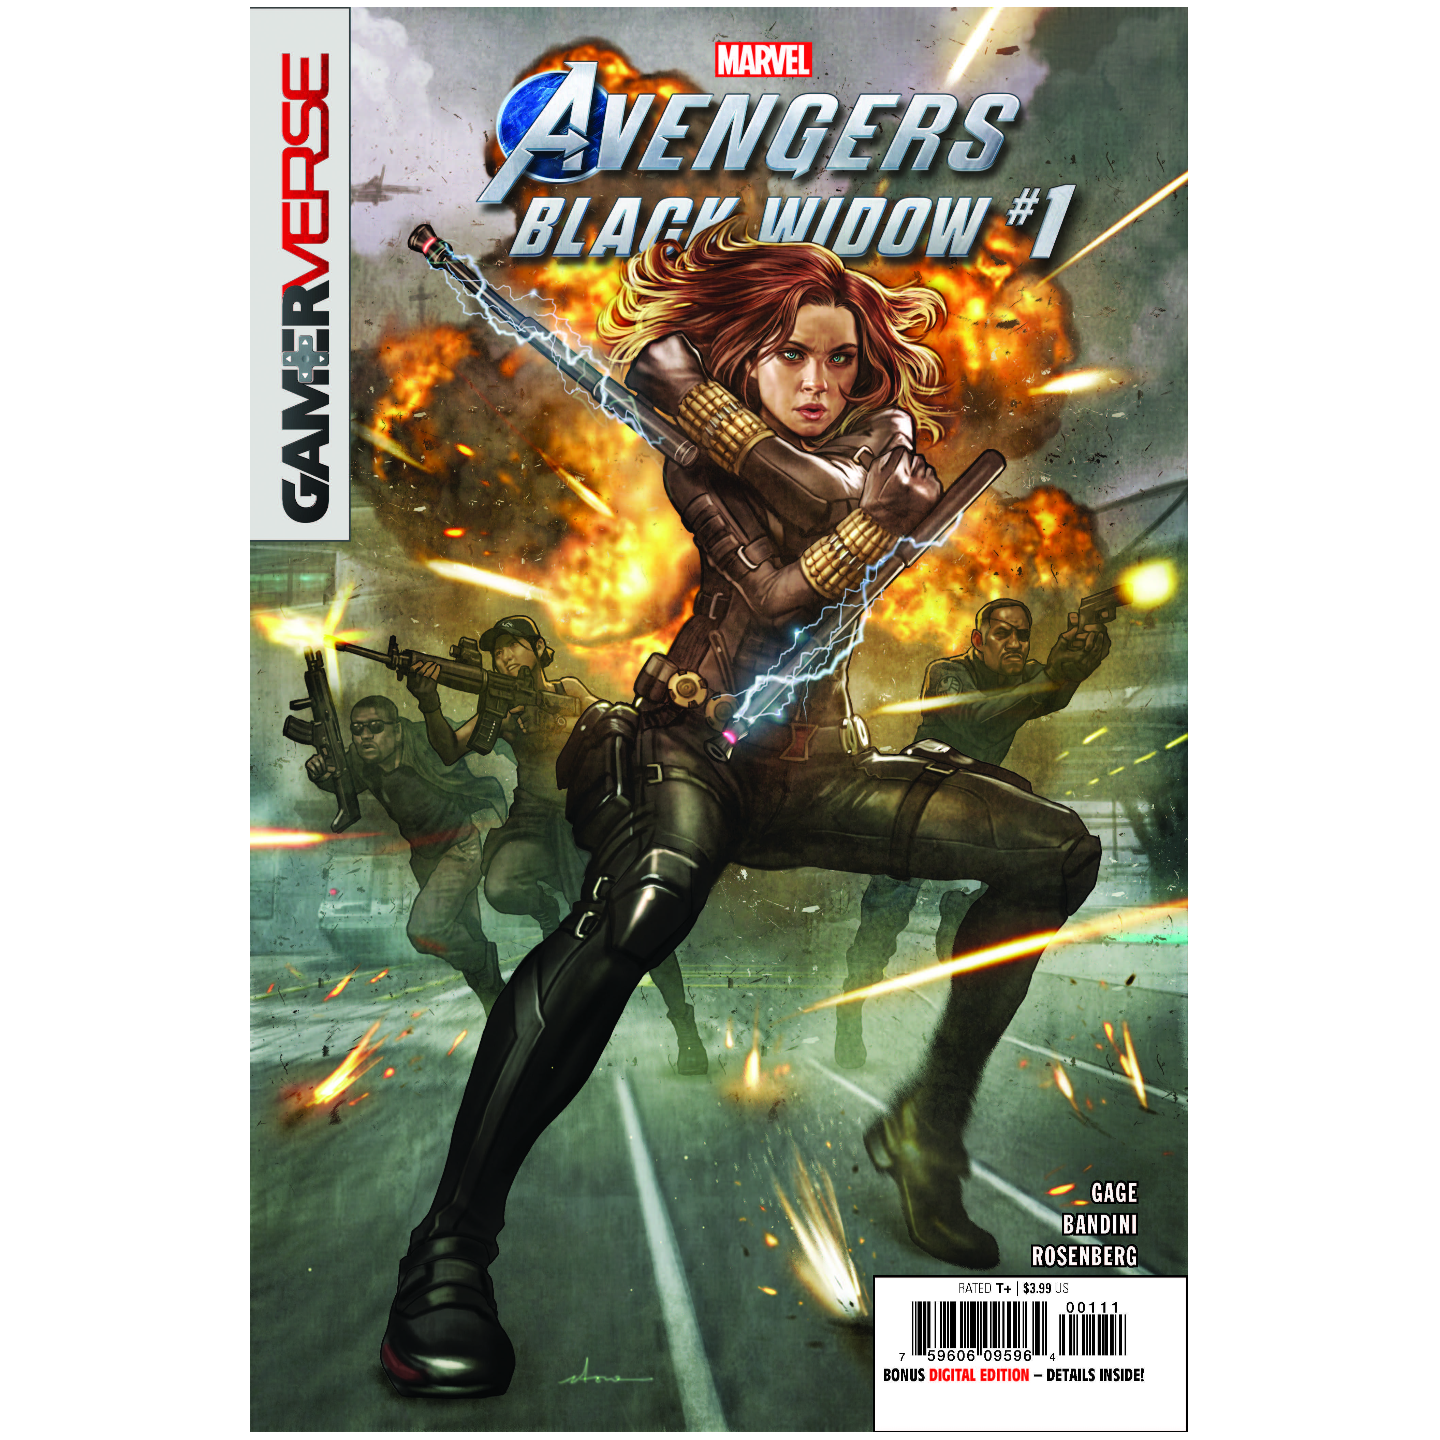 MARVELS AVENGERS BLACK WIDOW 1